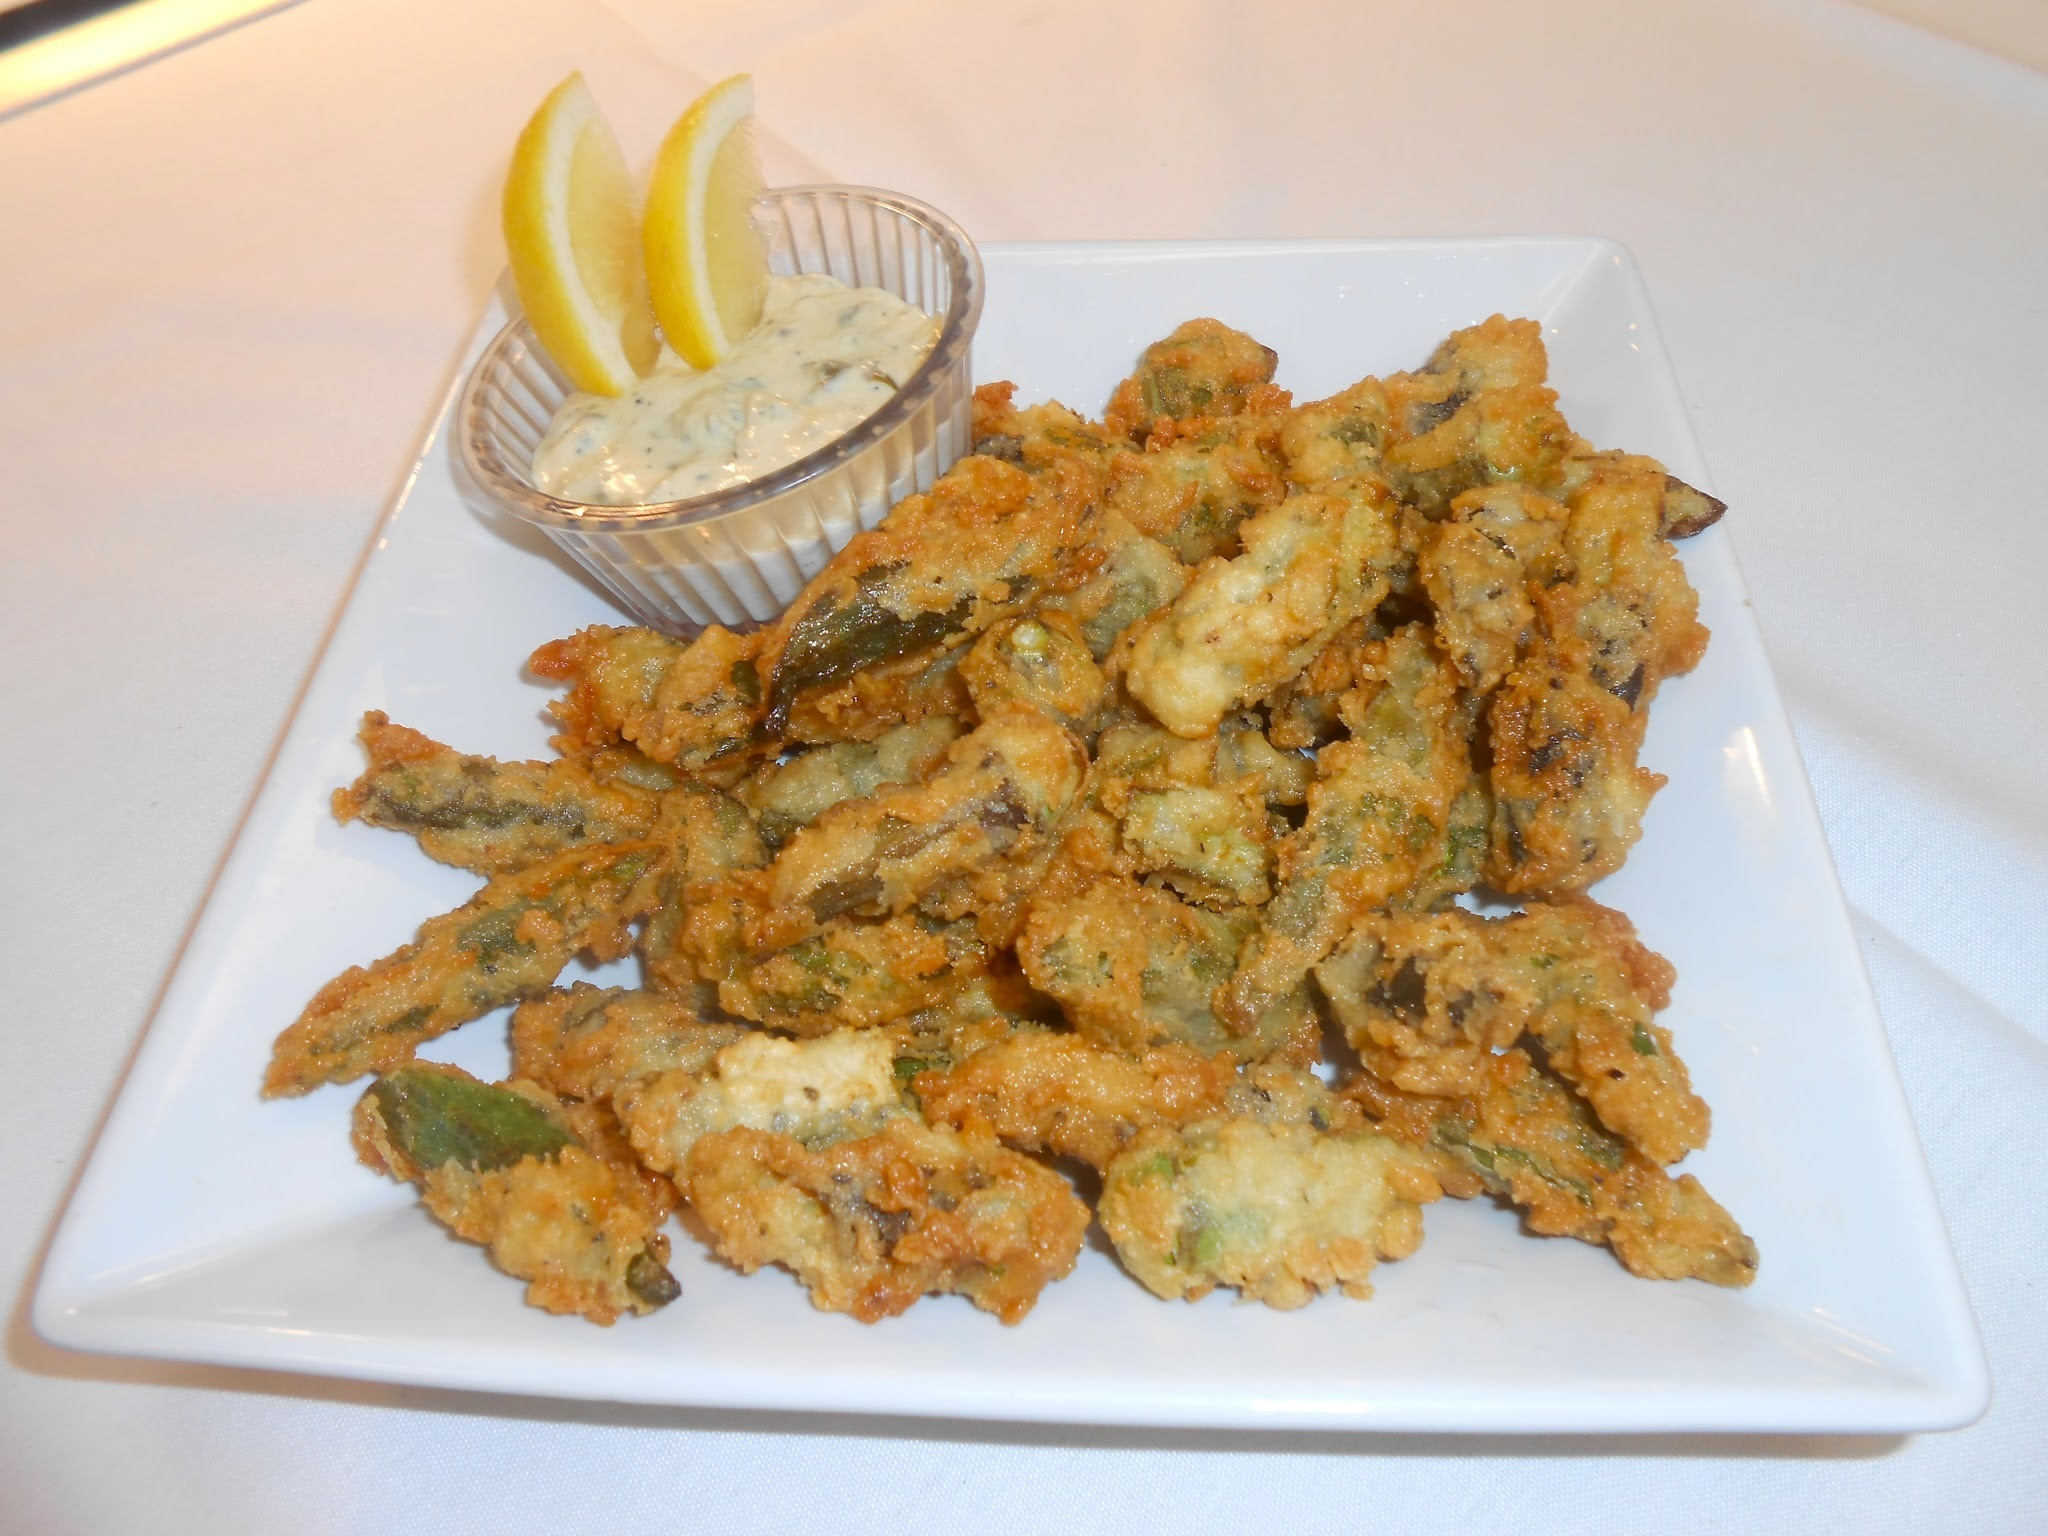 Southern Style Buttermilk Batter Crispy Fried Okra with Remoulade